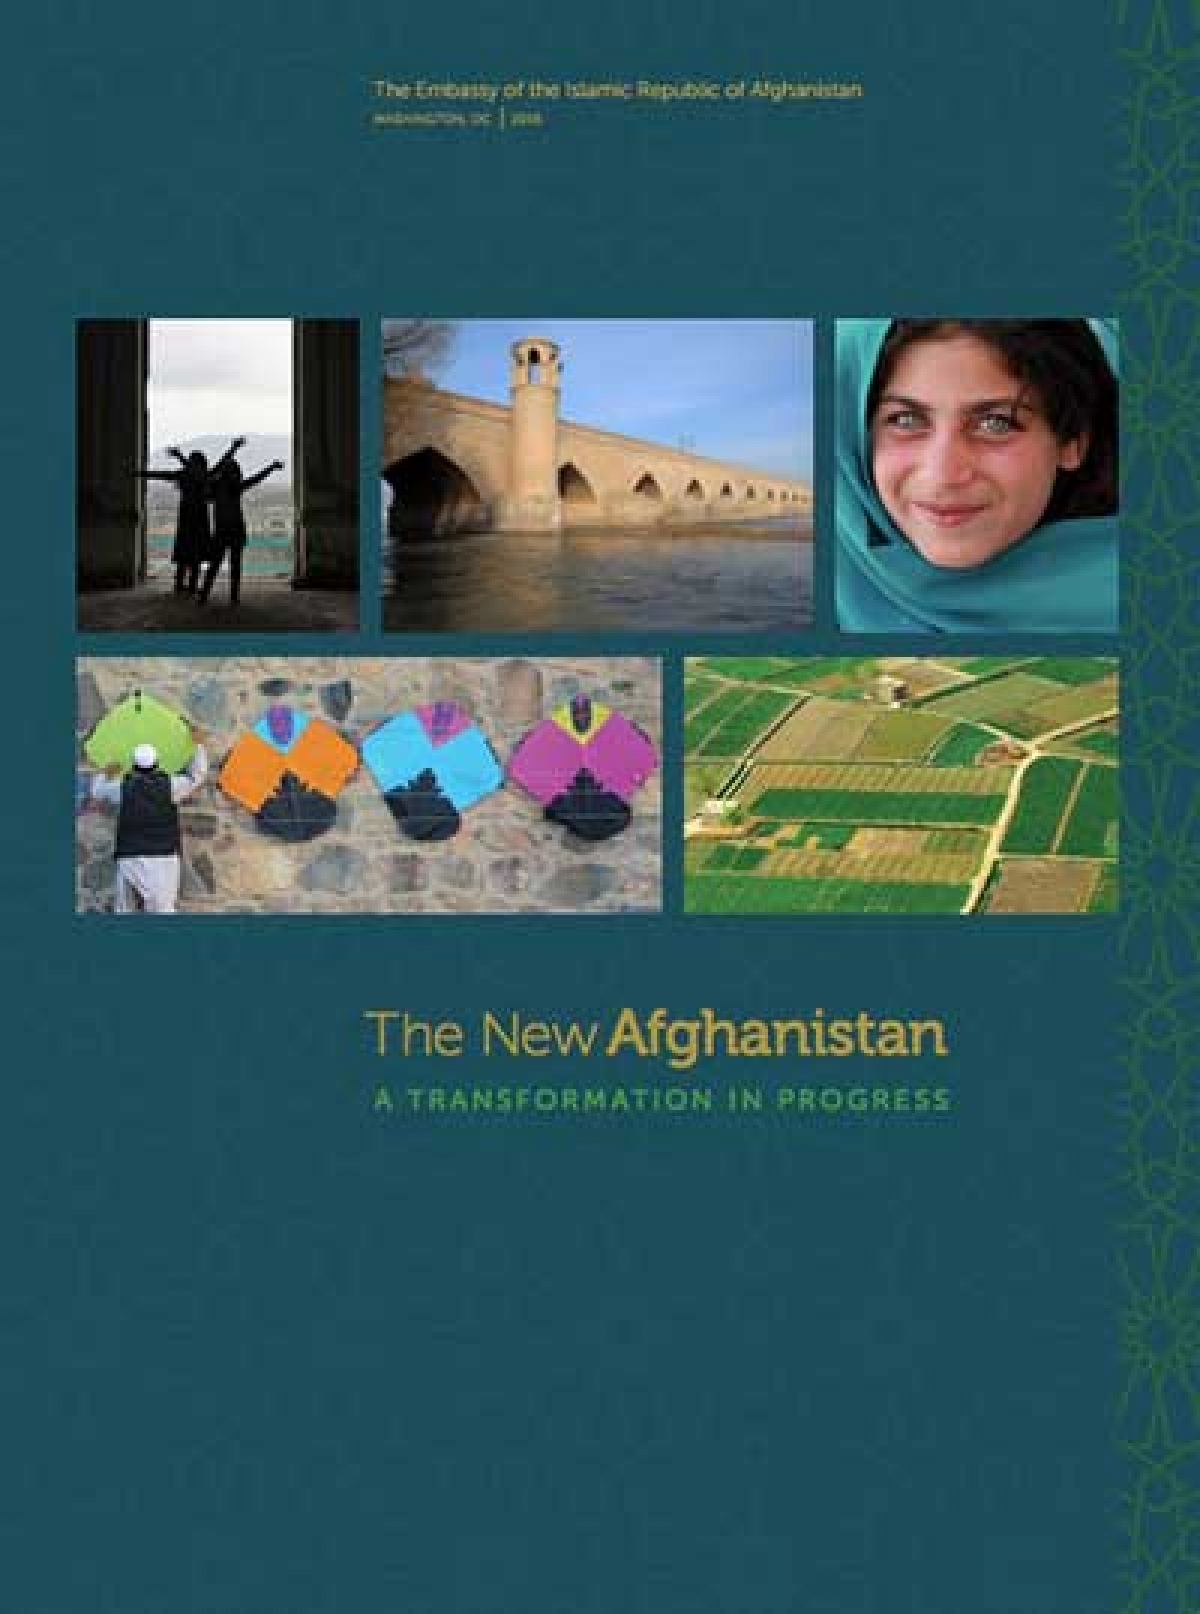 THE NEW AFGHANISTAN - A TRANSFORMATION IN PROGRESS